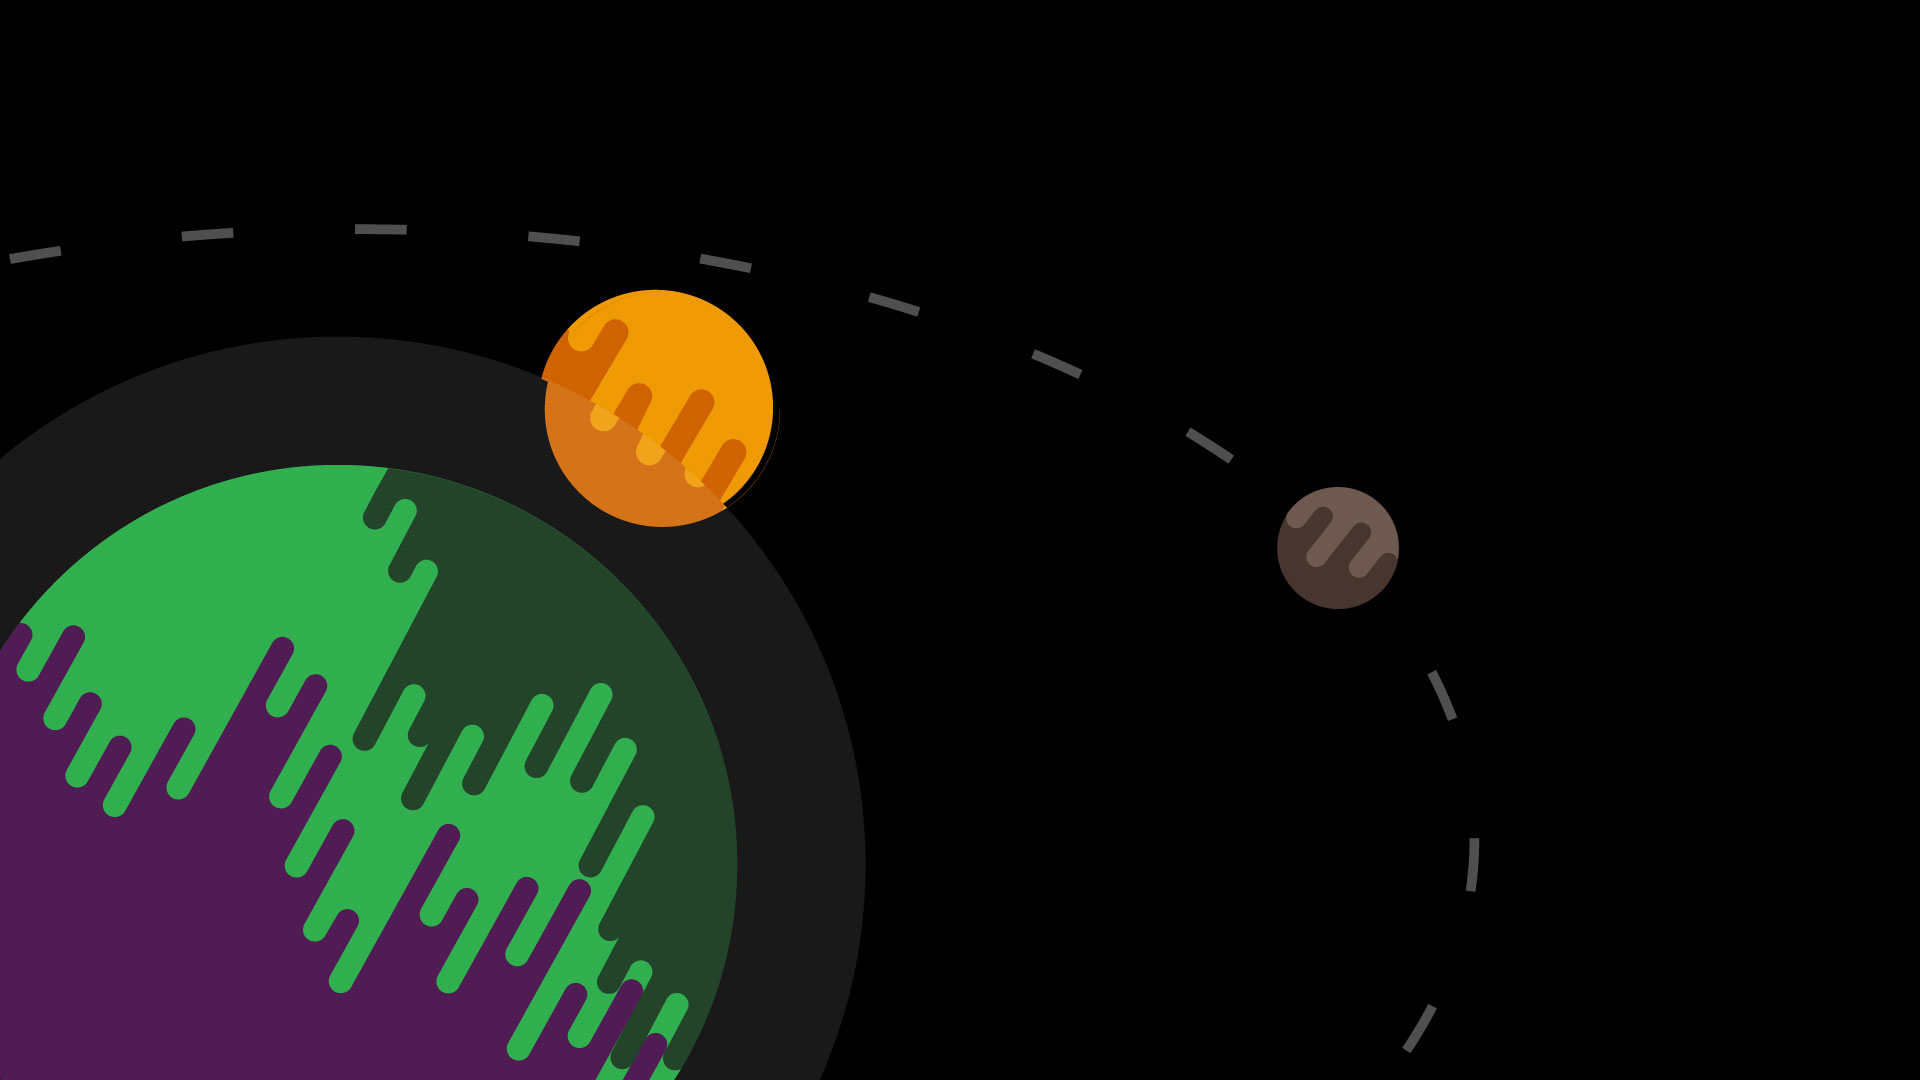 One of the minimalist wallpapers Ive made Drippy Space 1920 x 1920x1080